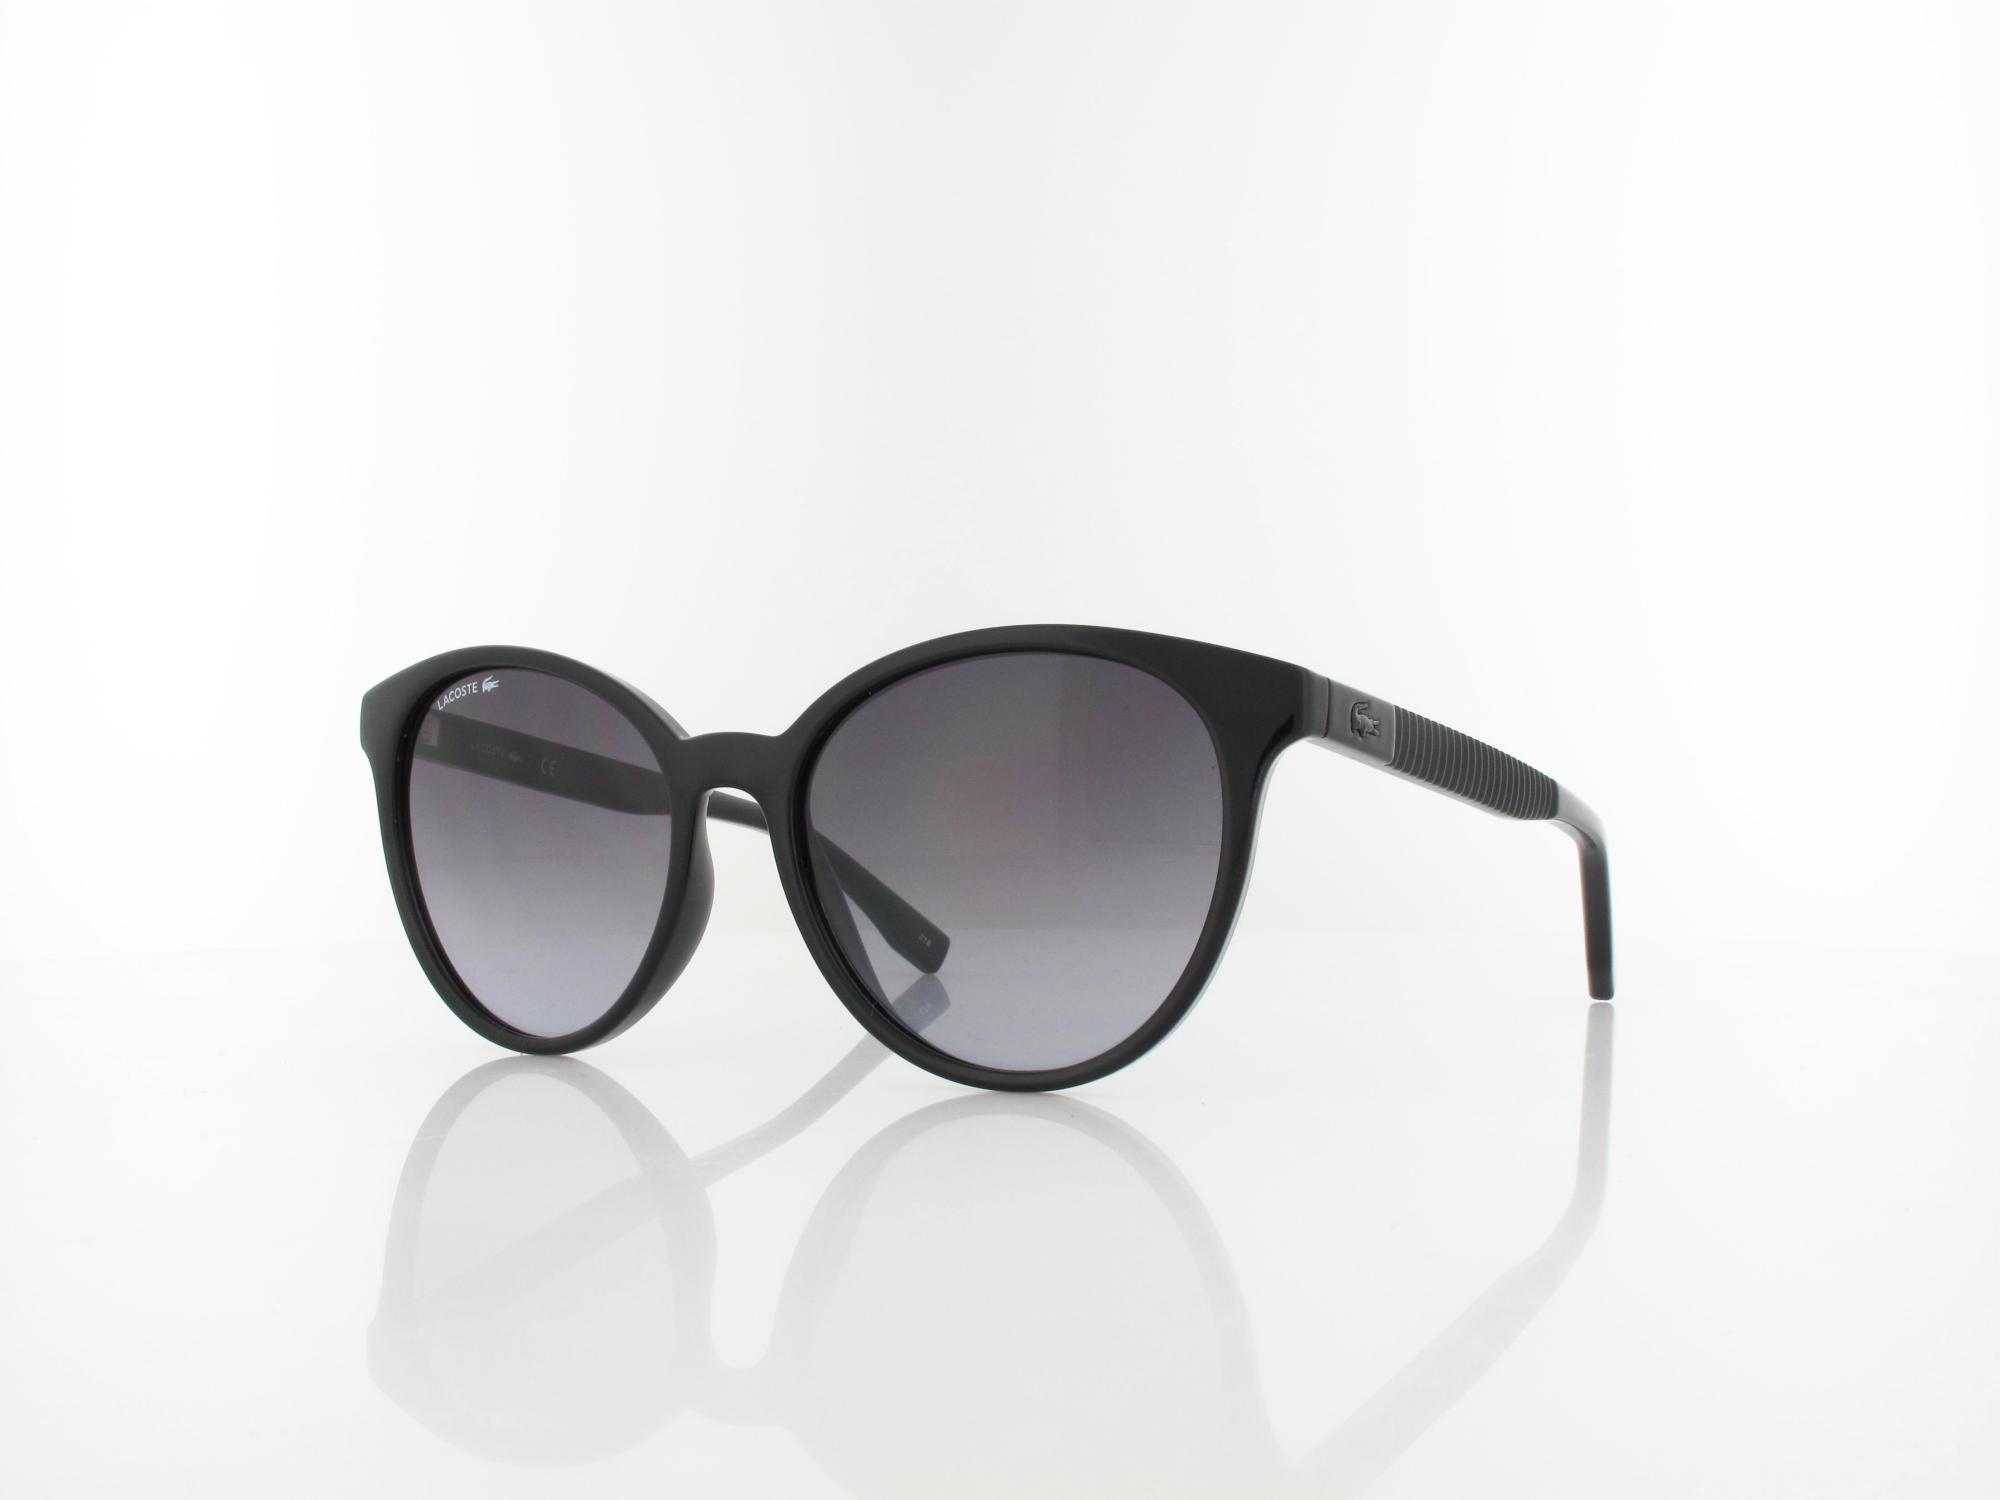 Lacoste | L887S 001 54 | black / grey gradient